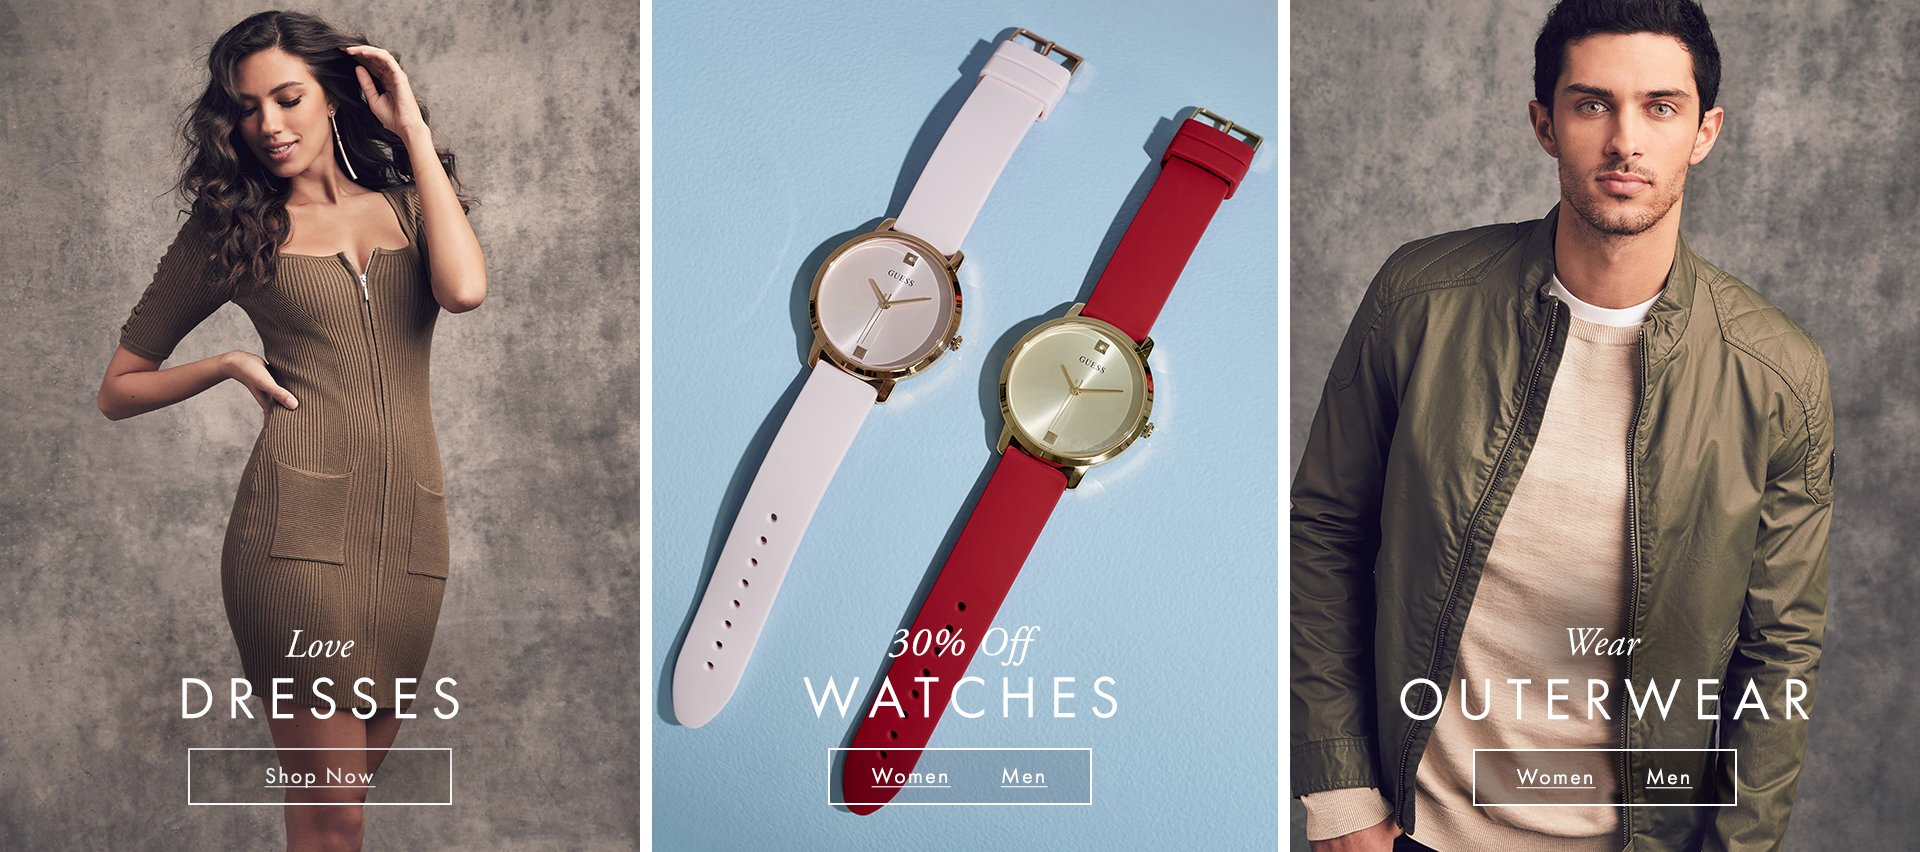 GUESS Dresses, Watches & Outerwear